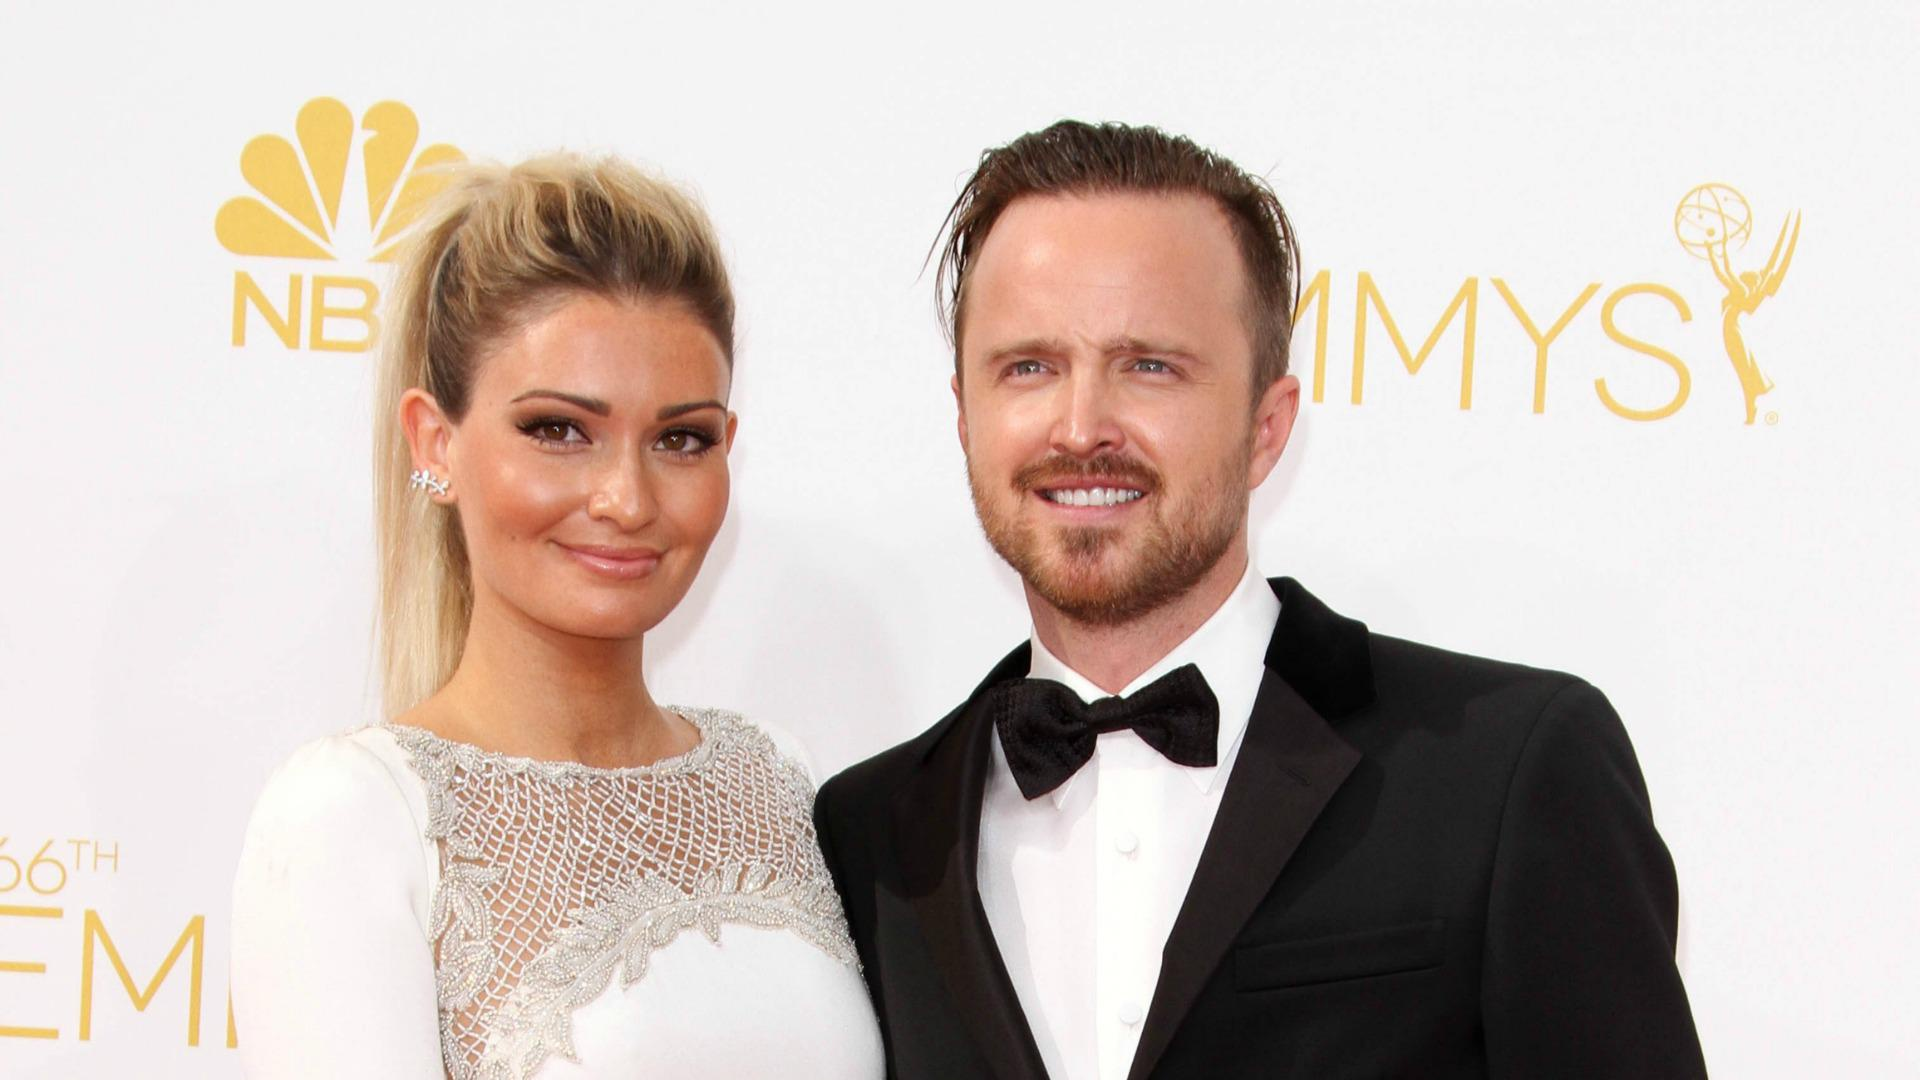 Aaron Paul's Emmys speech crashes Kind Campaign website